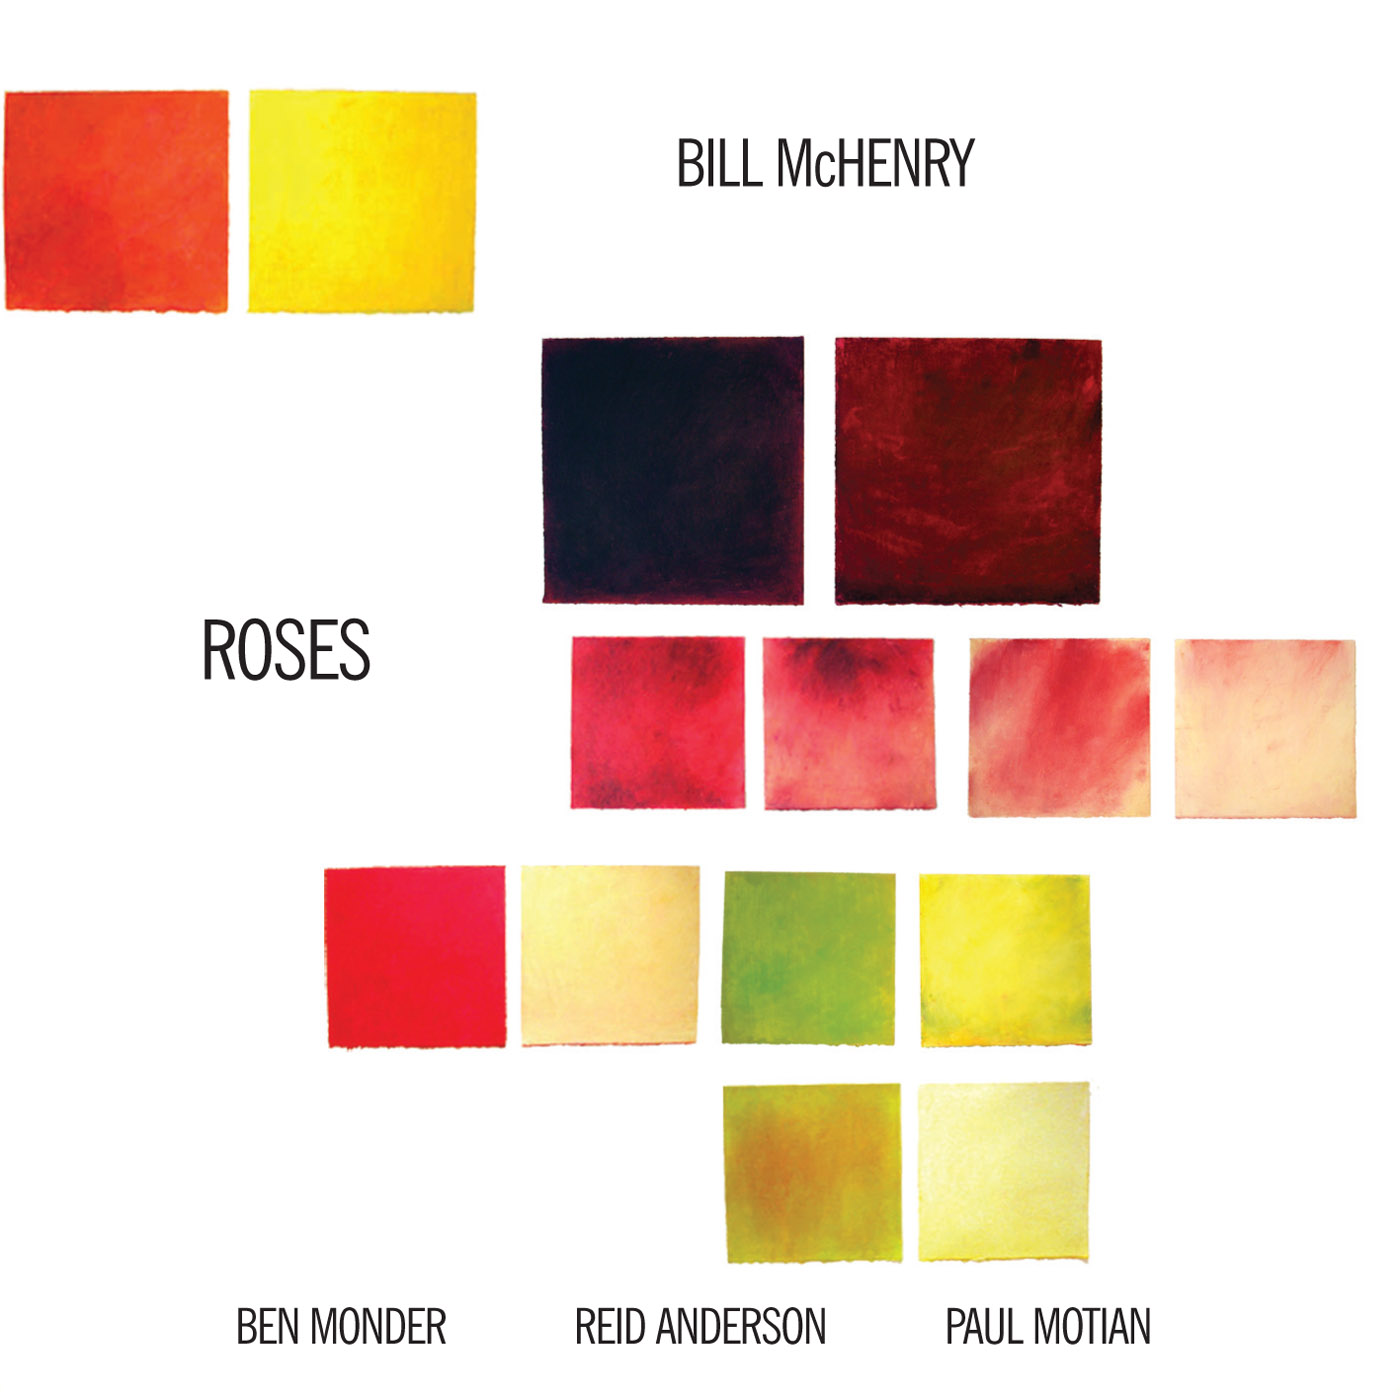 Roses by Bill McHenry cover